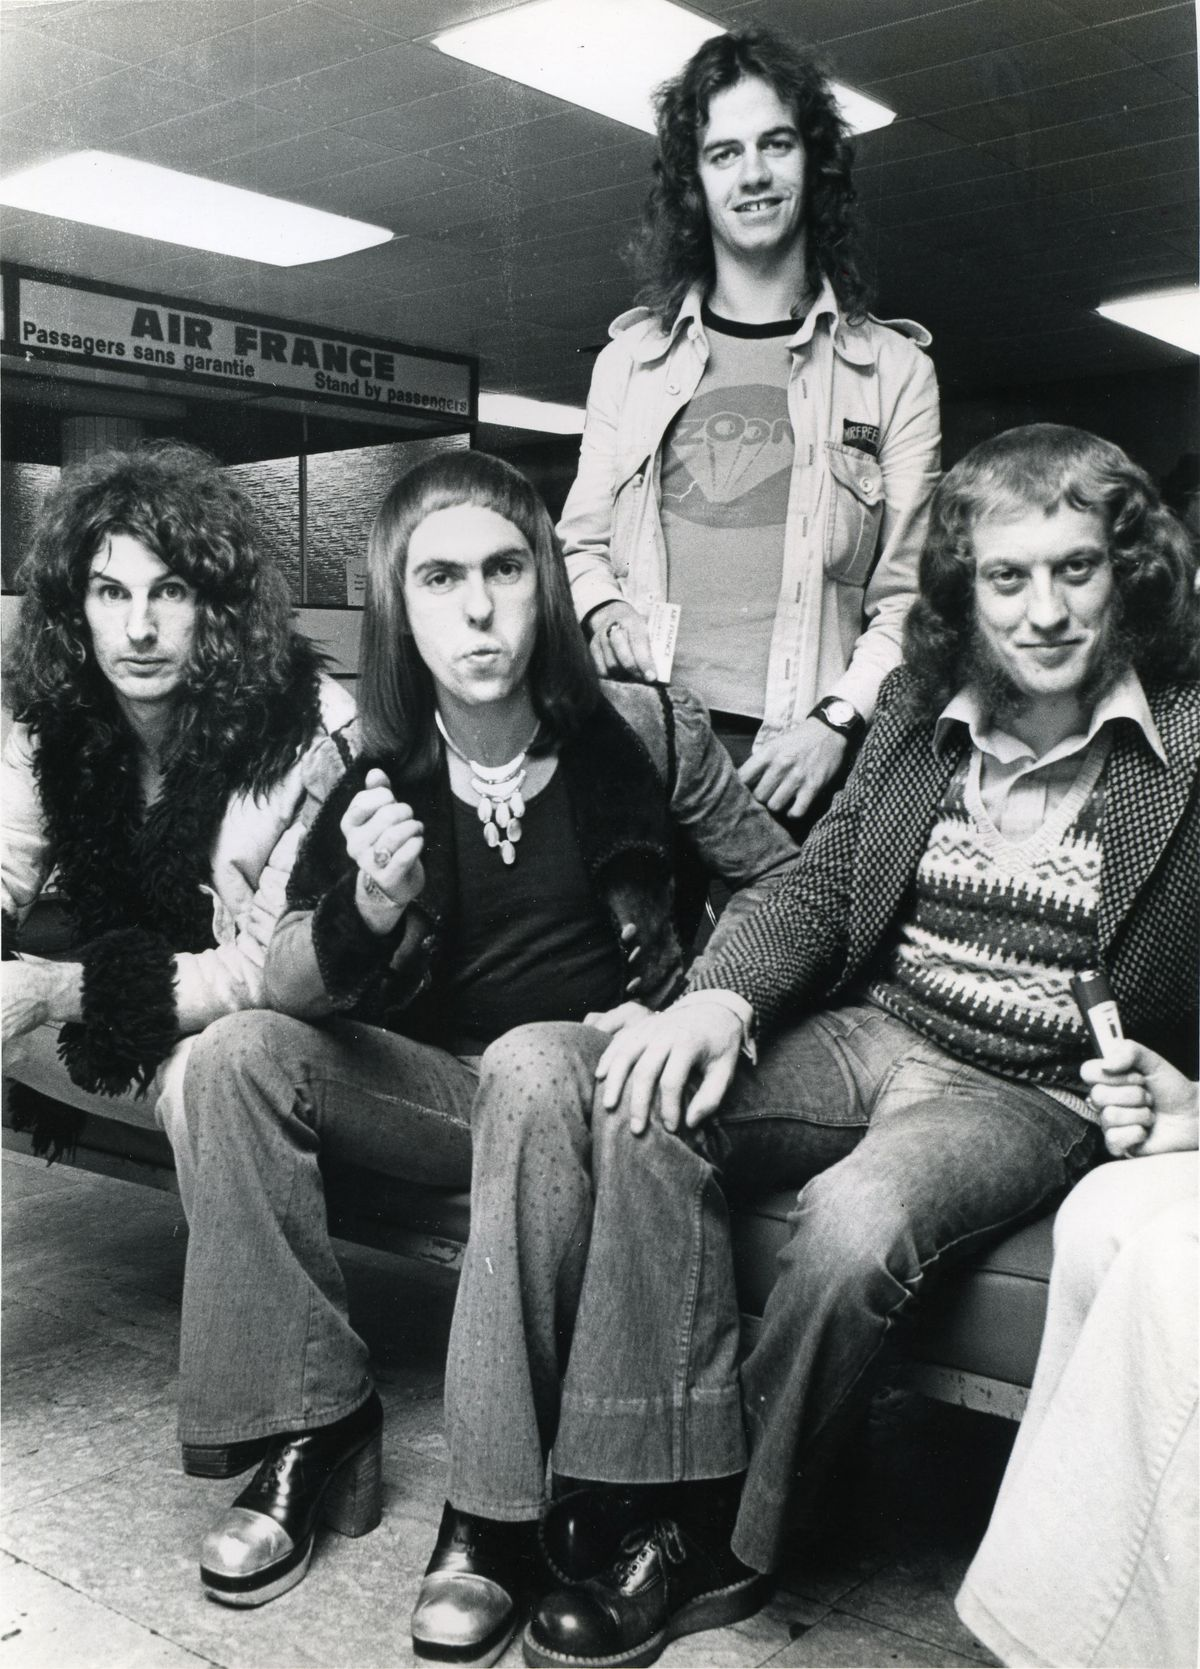 Slade at Heathrow airport in 1972